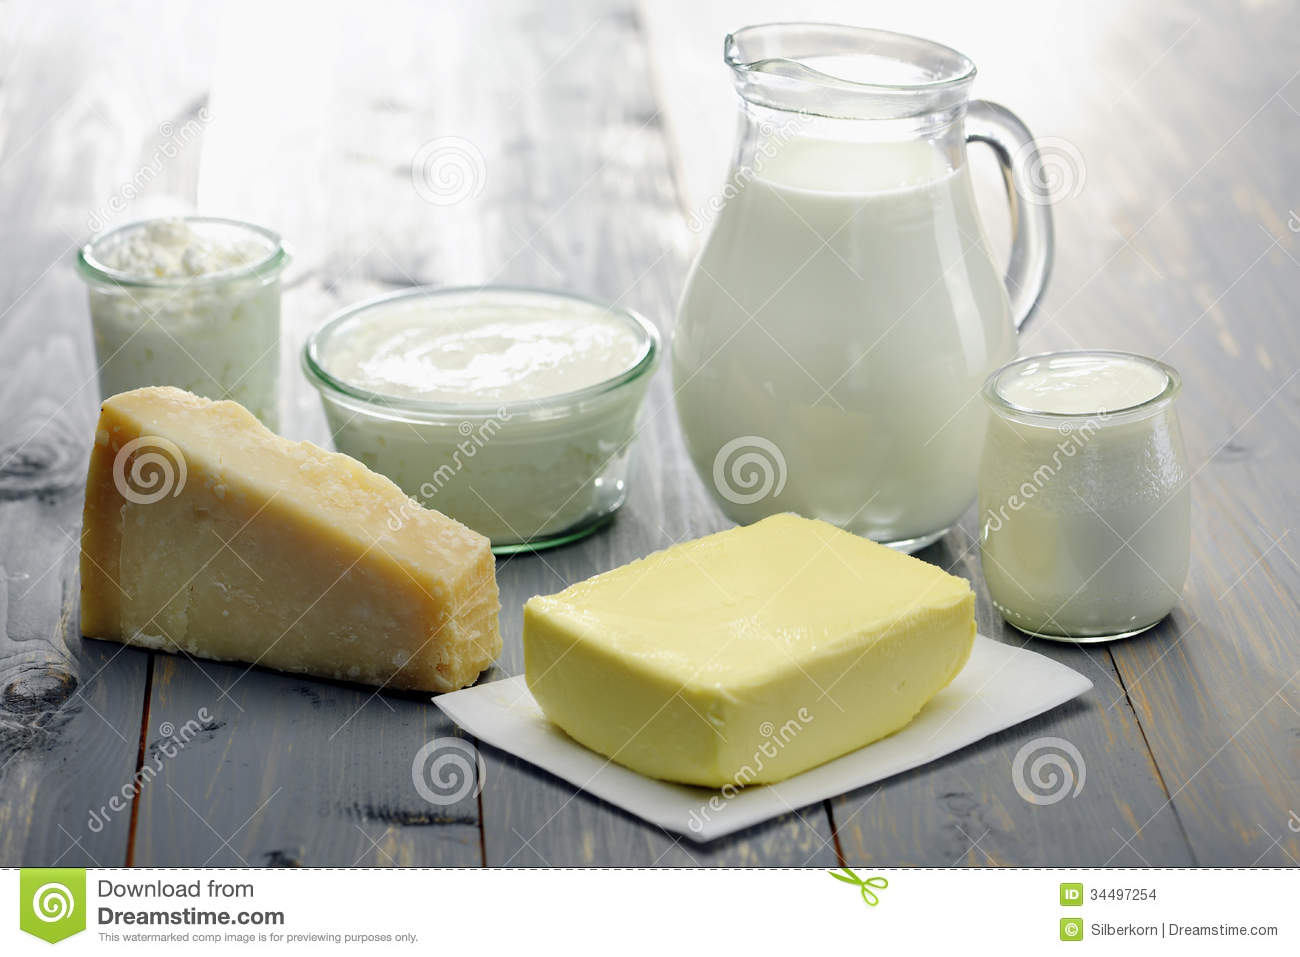 Diary Products, milk,cheese,ricotta, yogurt and butter.